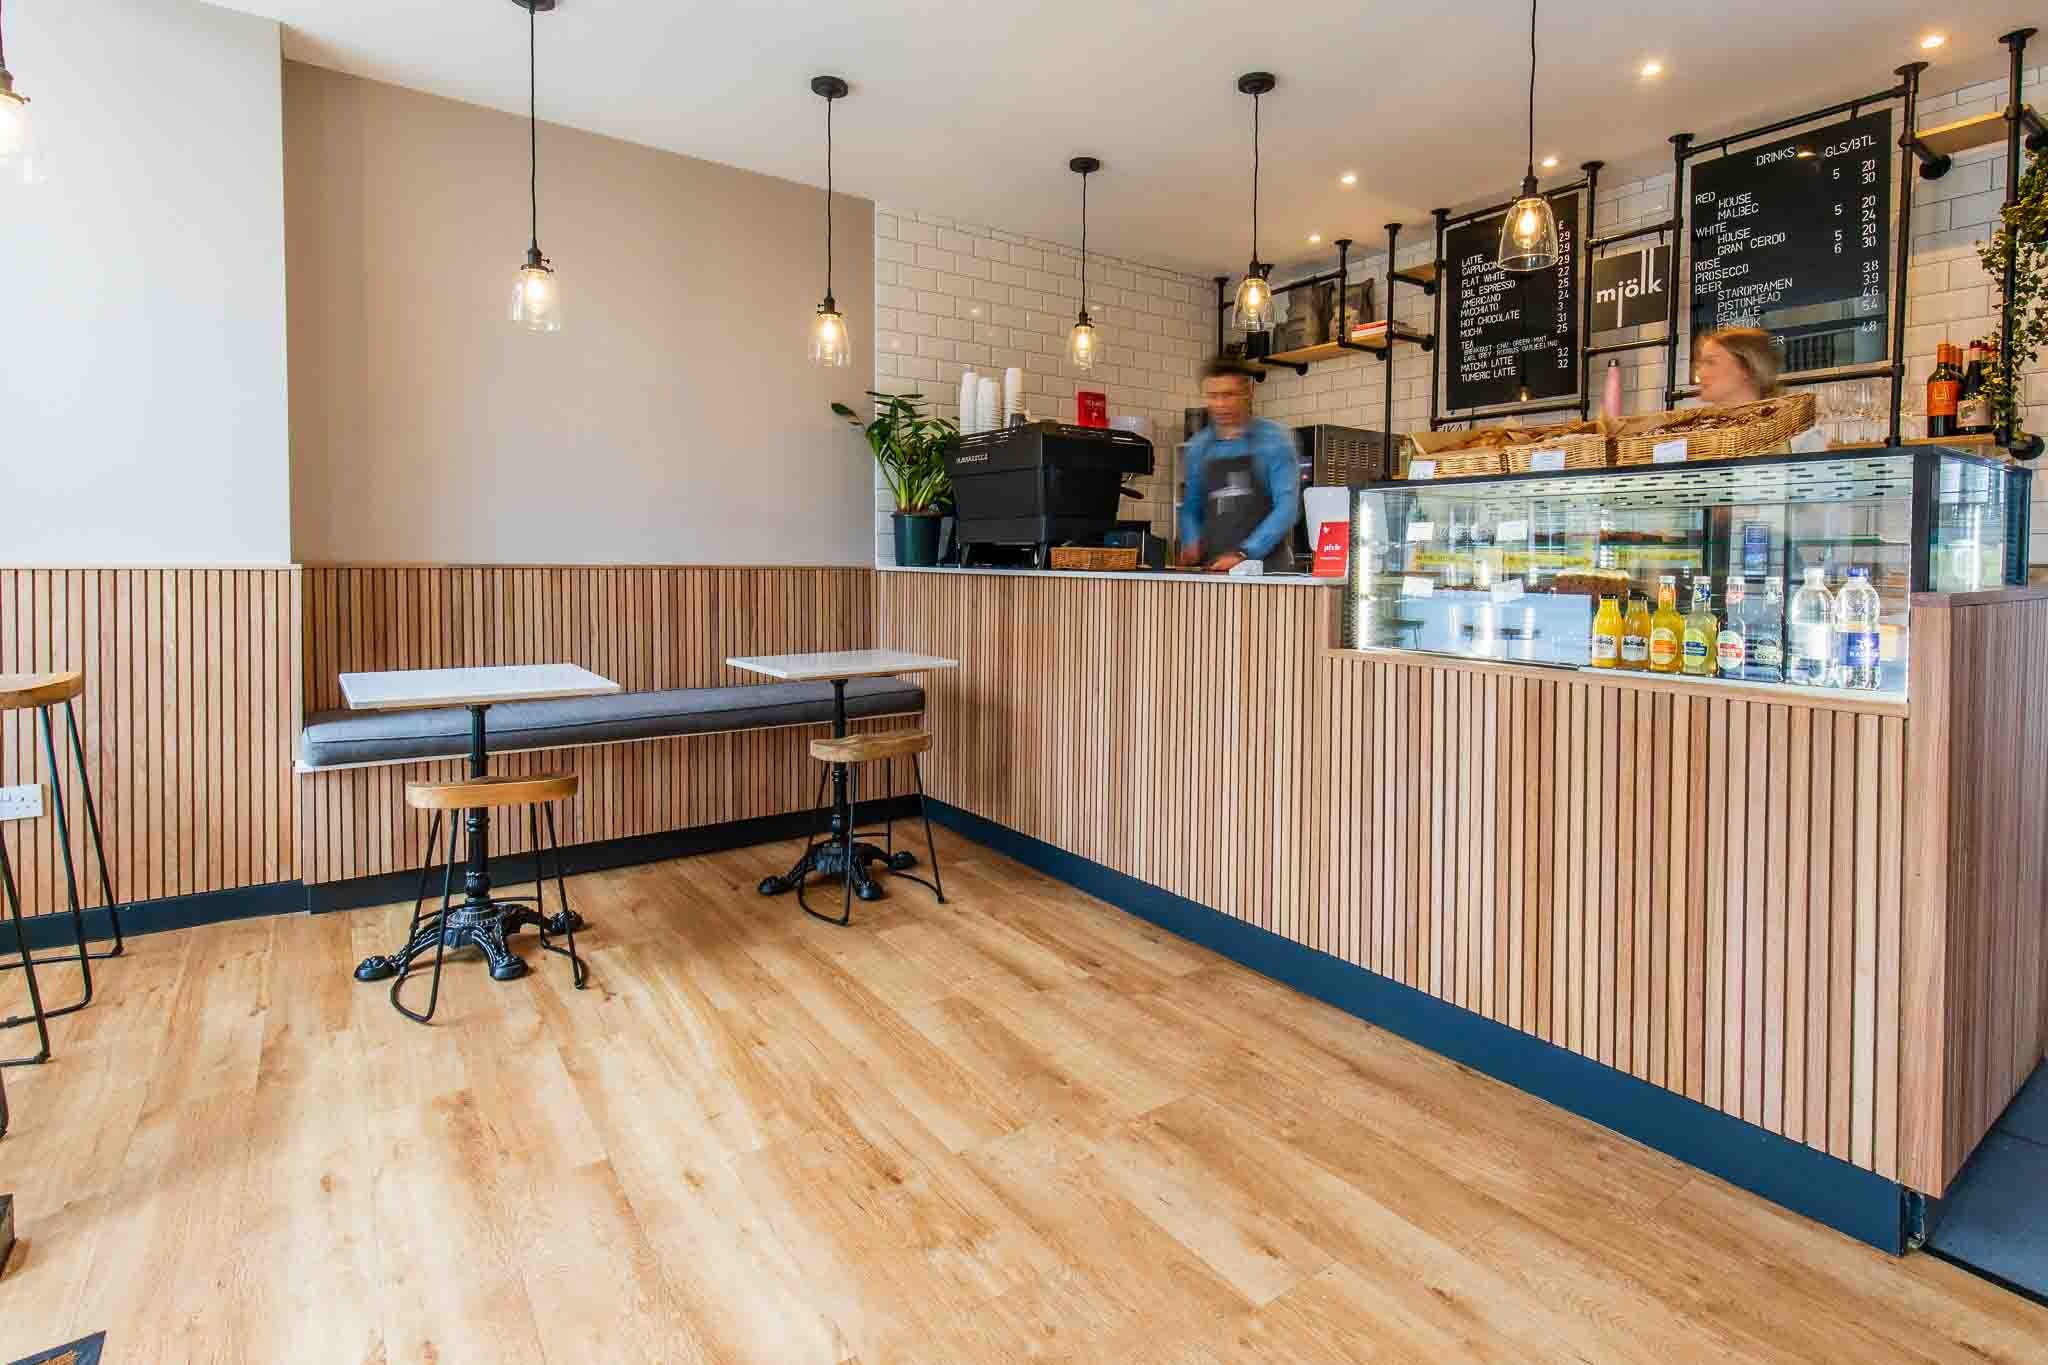 Professional photograph of a cafe, showing improved lighting, space and action.